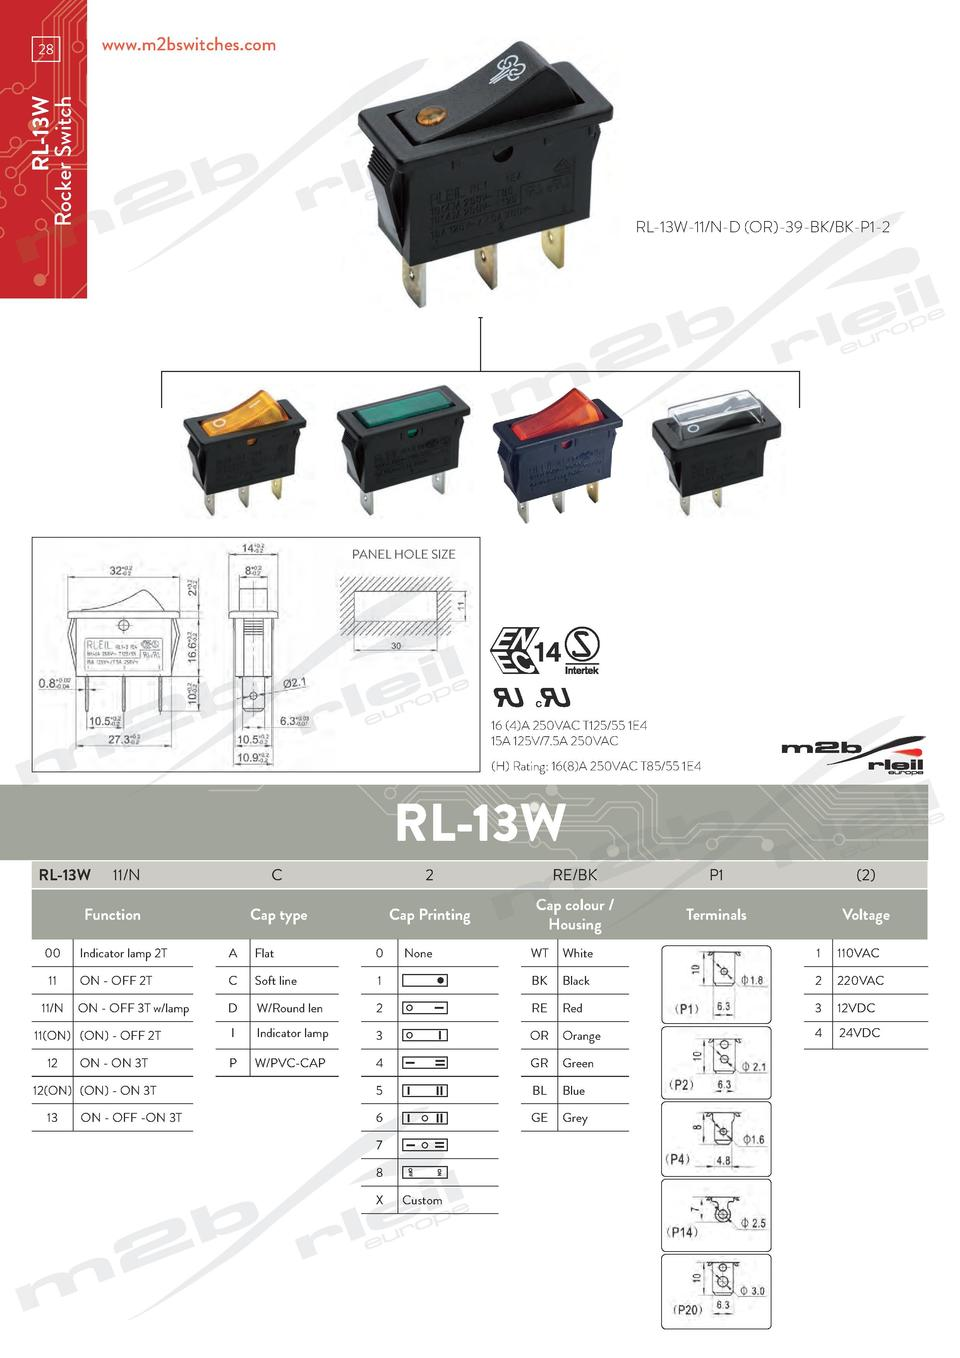 www.m2bswitches.com  RL-13W Rocker Switch  28  RL-13W-11 N-D  OR -39-BK BK-P1-2  PANEL HOLE SIZE  16  4 A 250VAC T125 55 1...